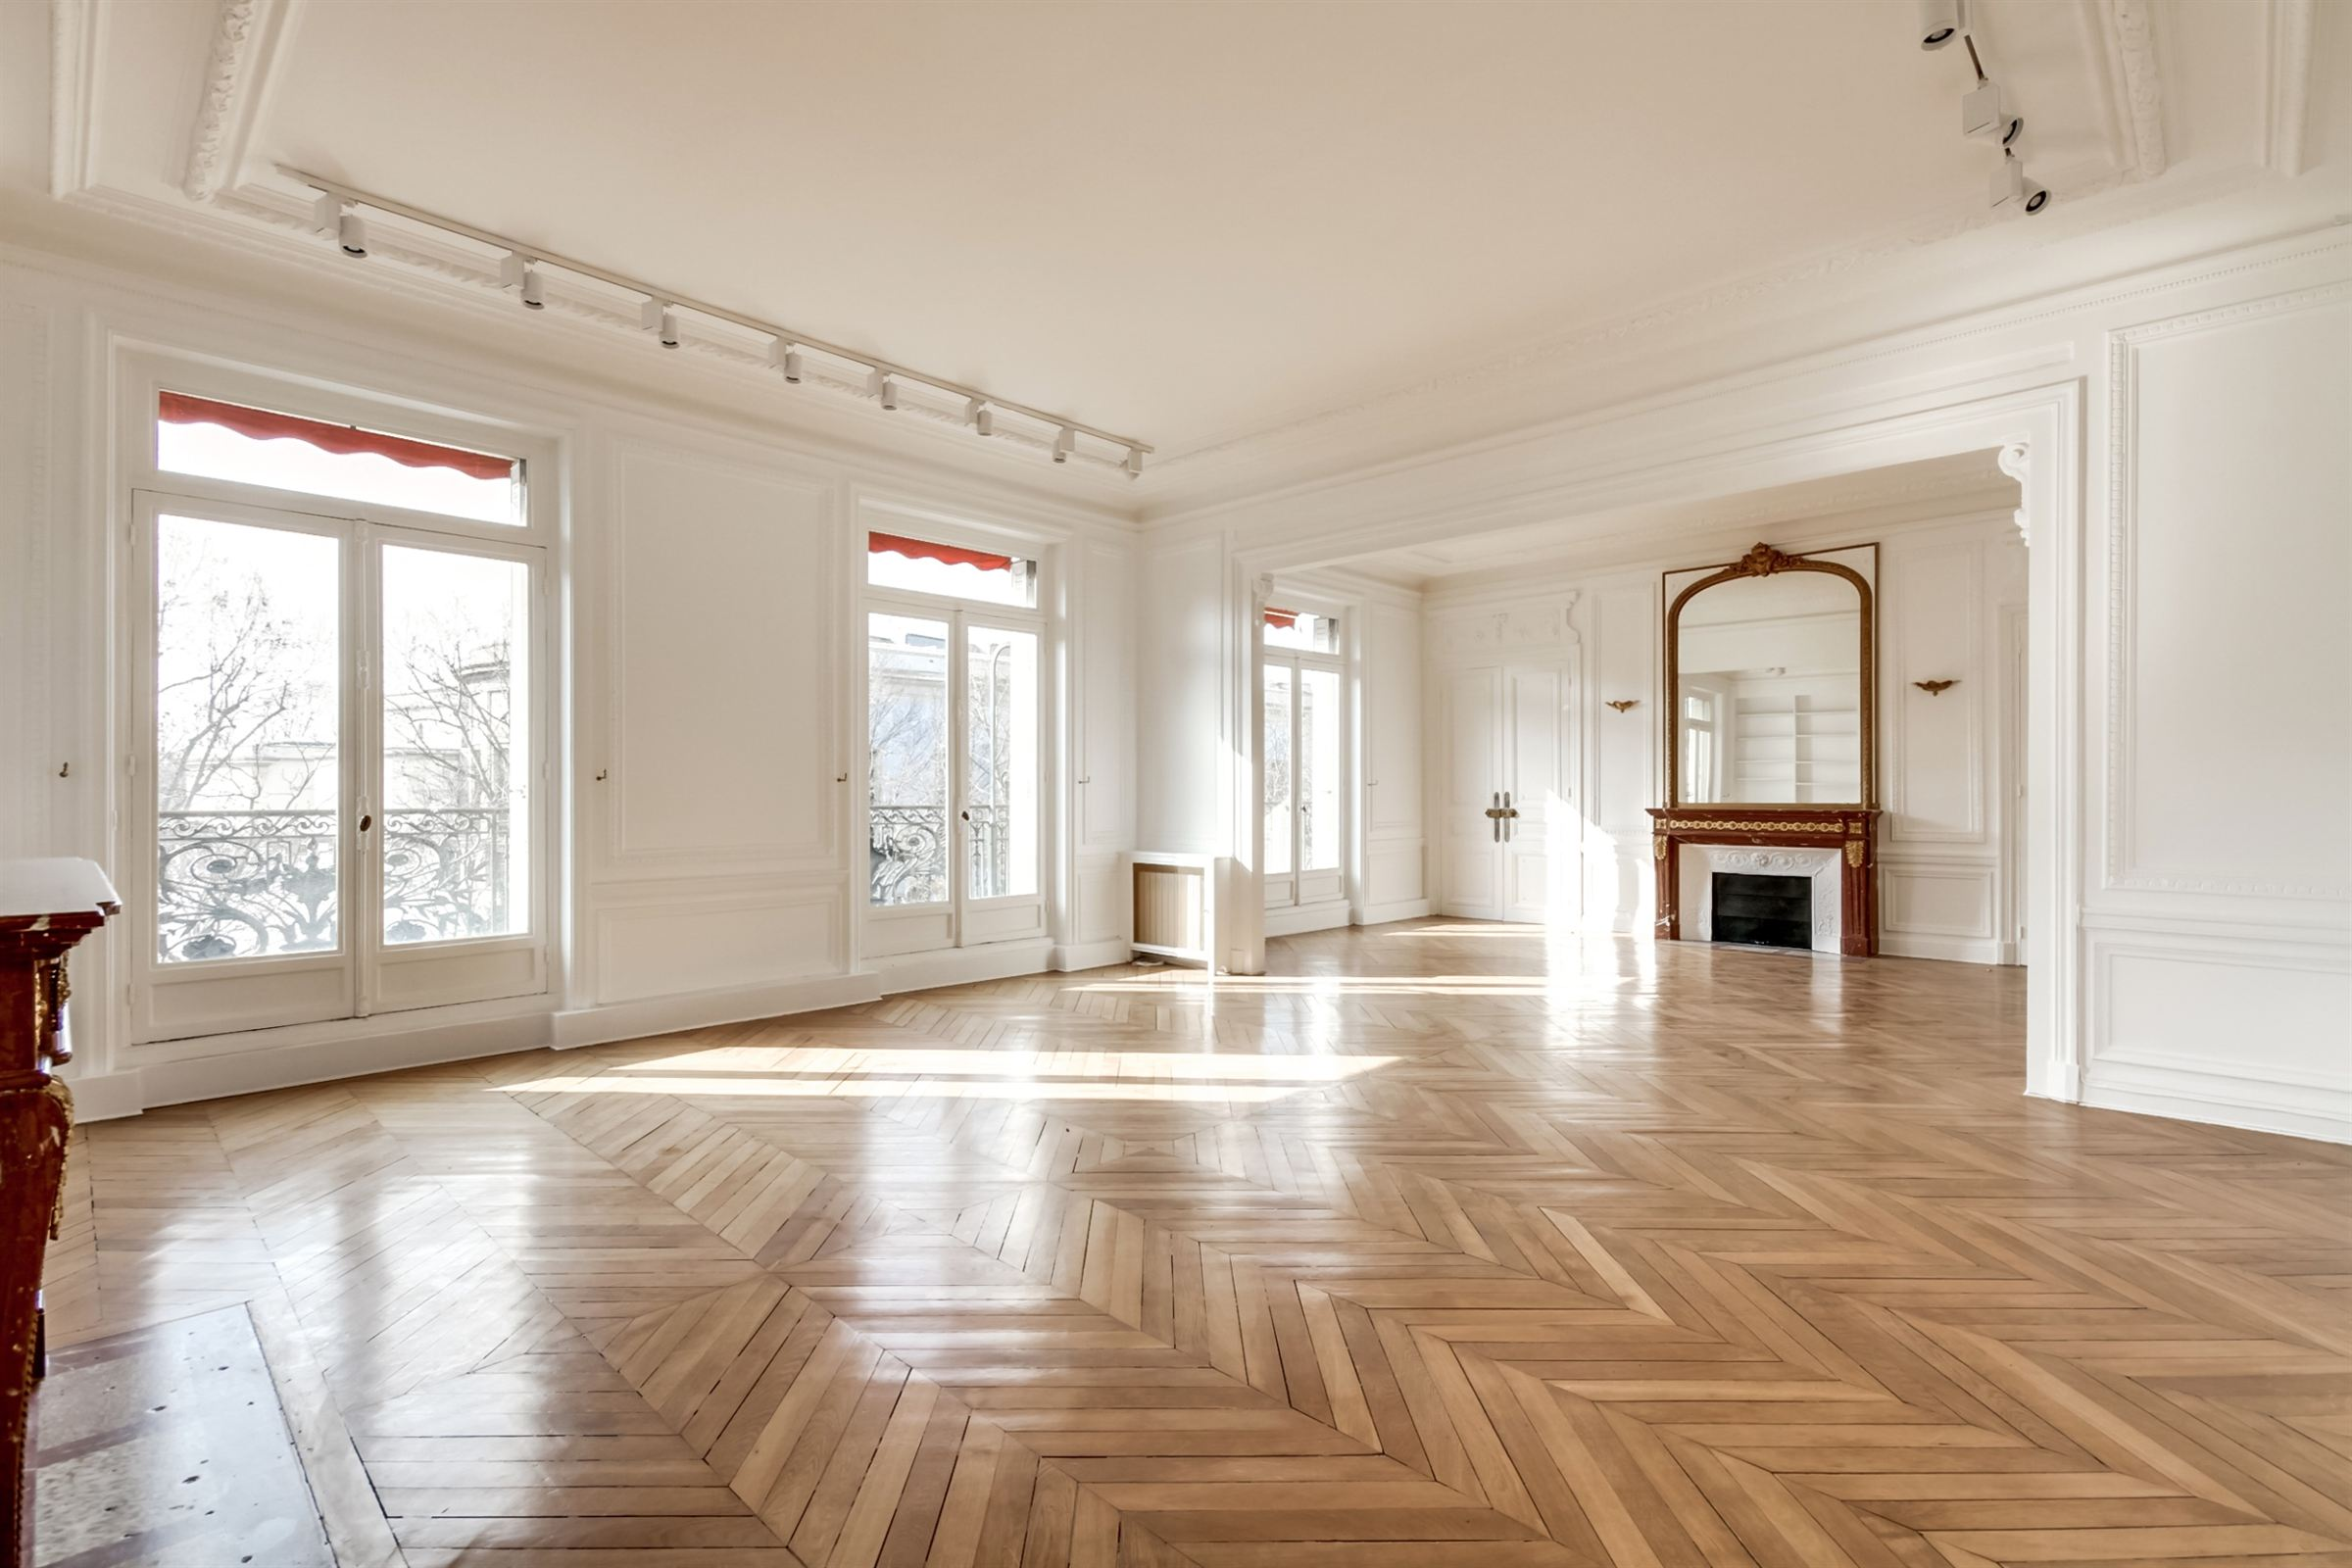 sales property at On sale lovely apartment with Eiffel Tower view in Paris 16 - Galliera Museum